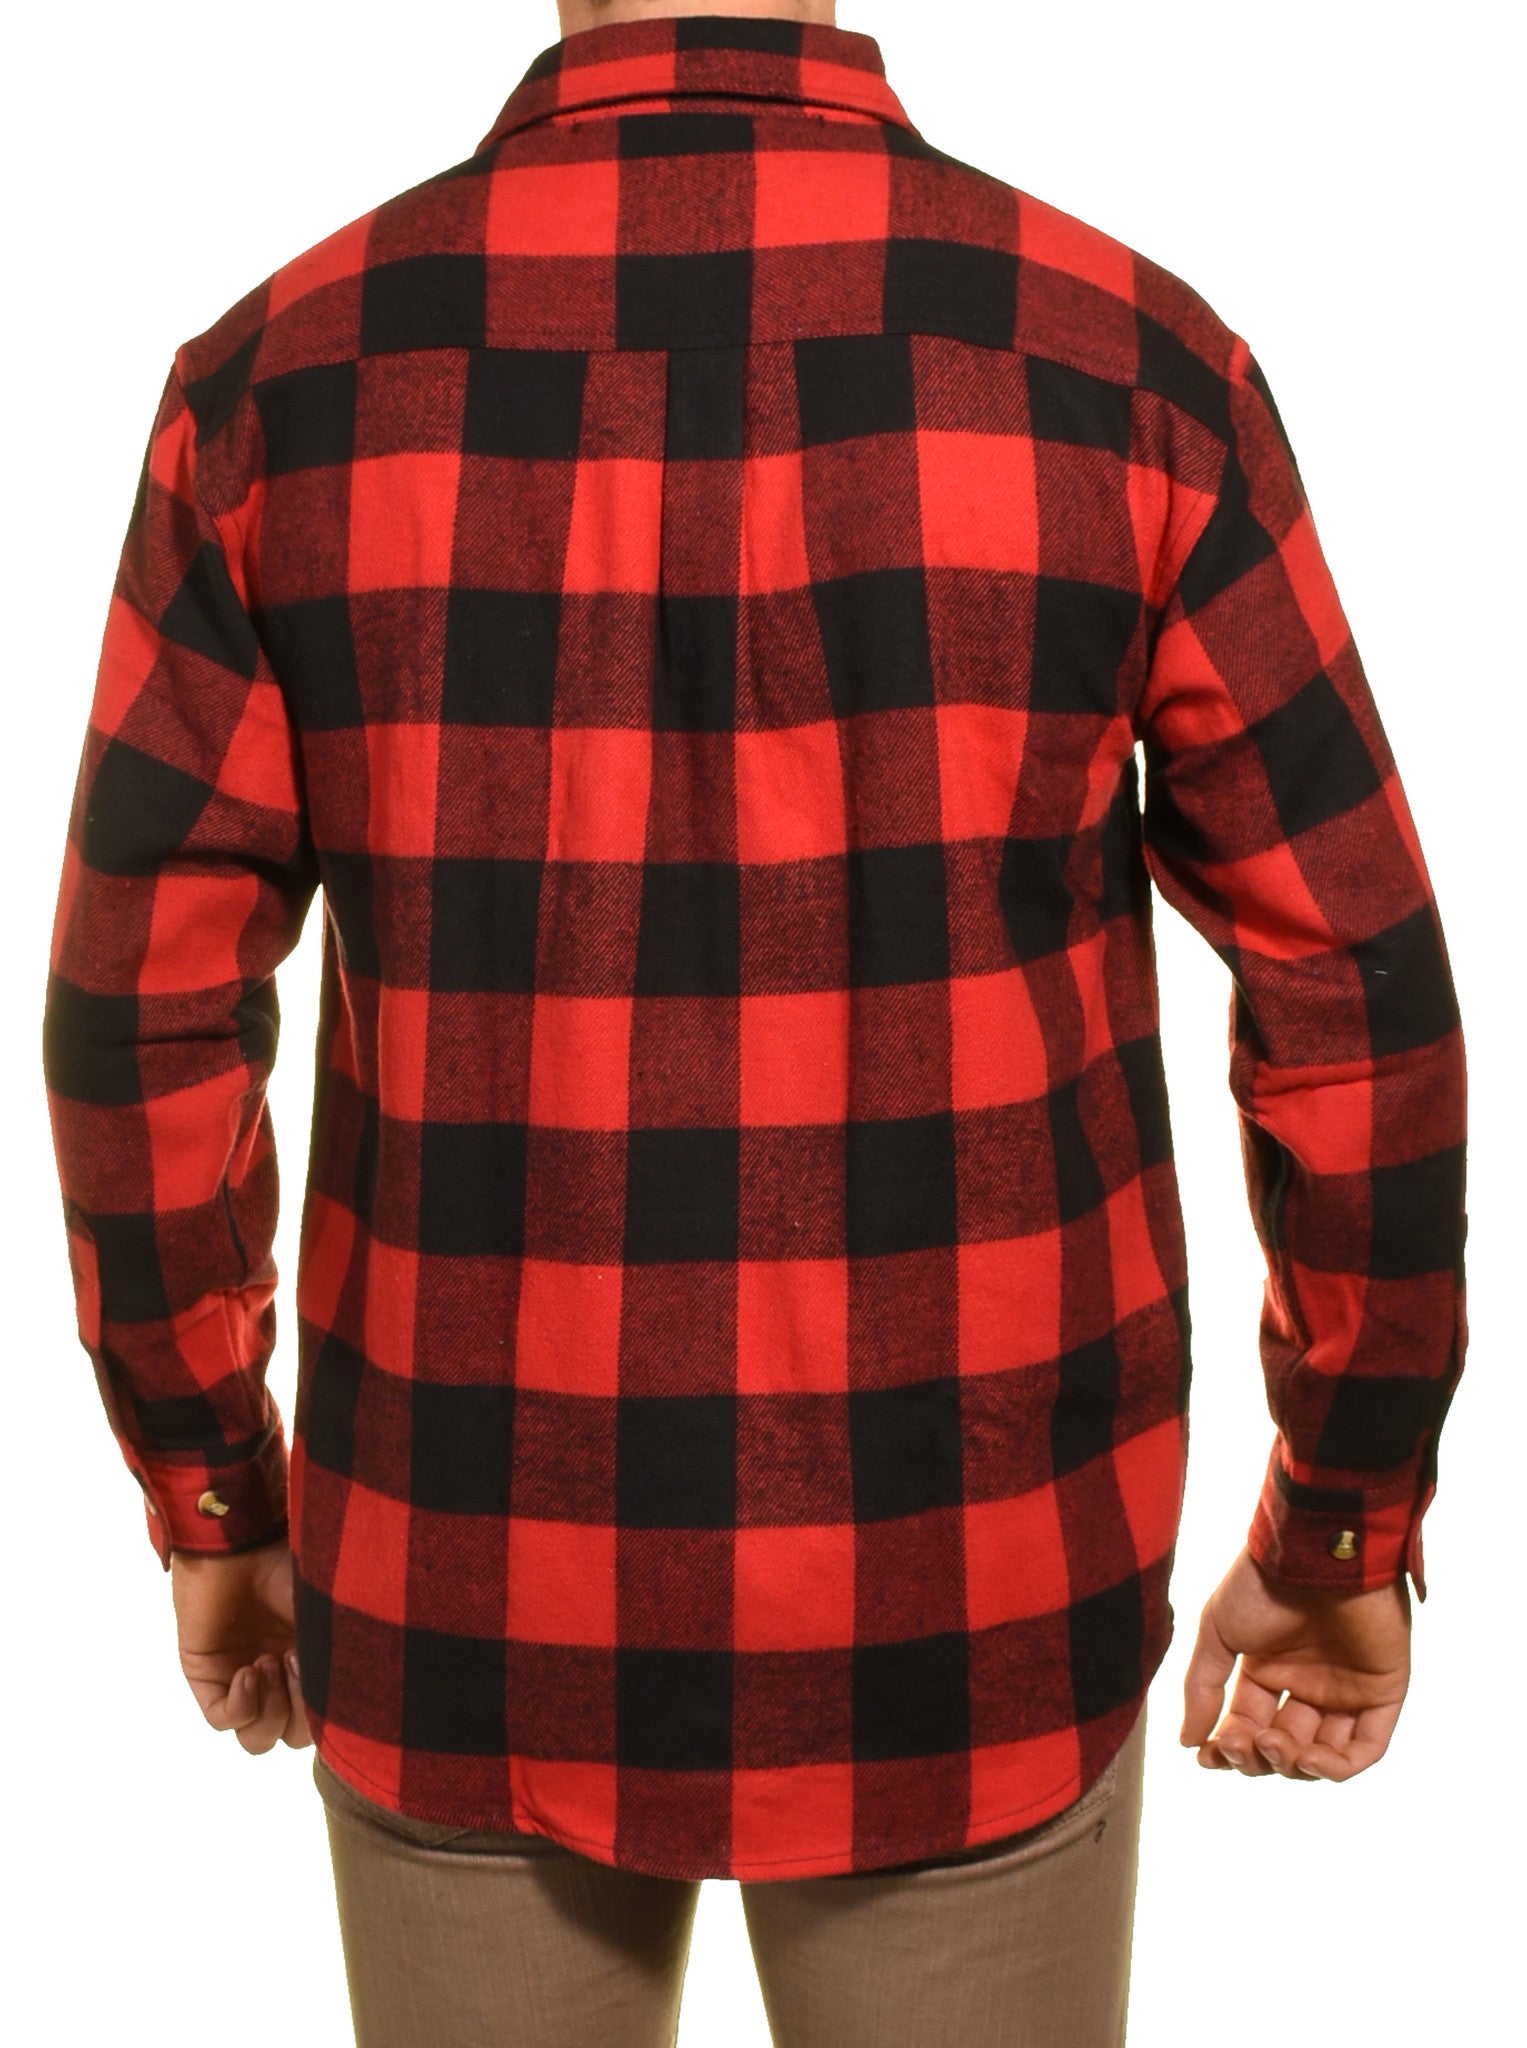 Guides Choice Pro Elite Mens Heavy Duty Flannel Shirt (Red Black Buffalo Check)